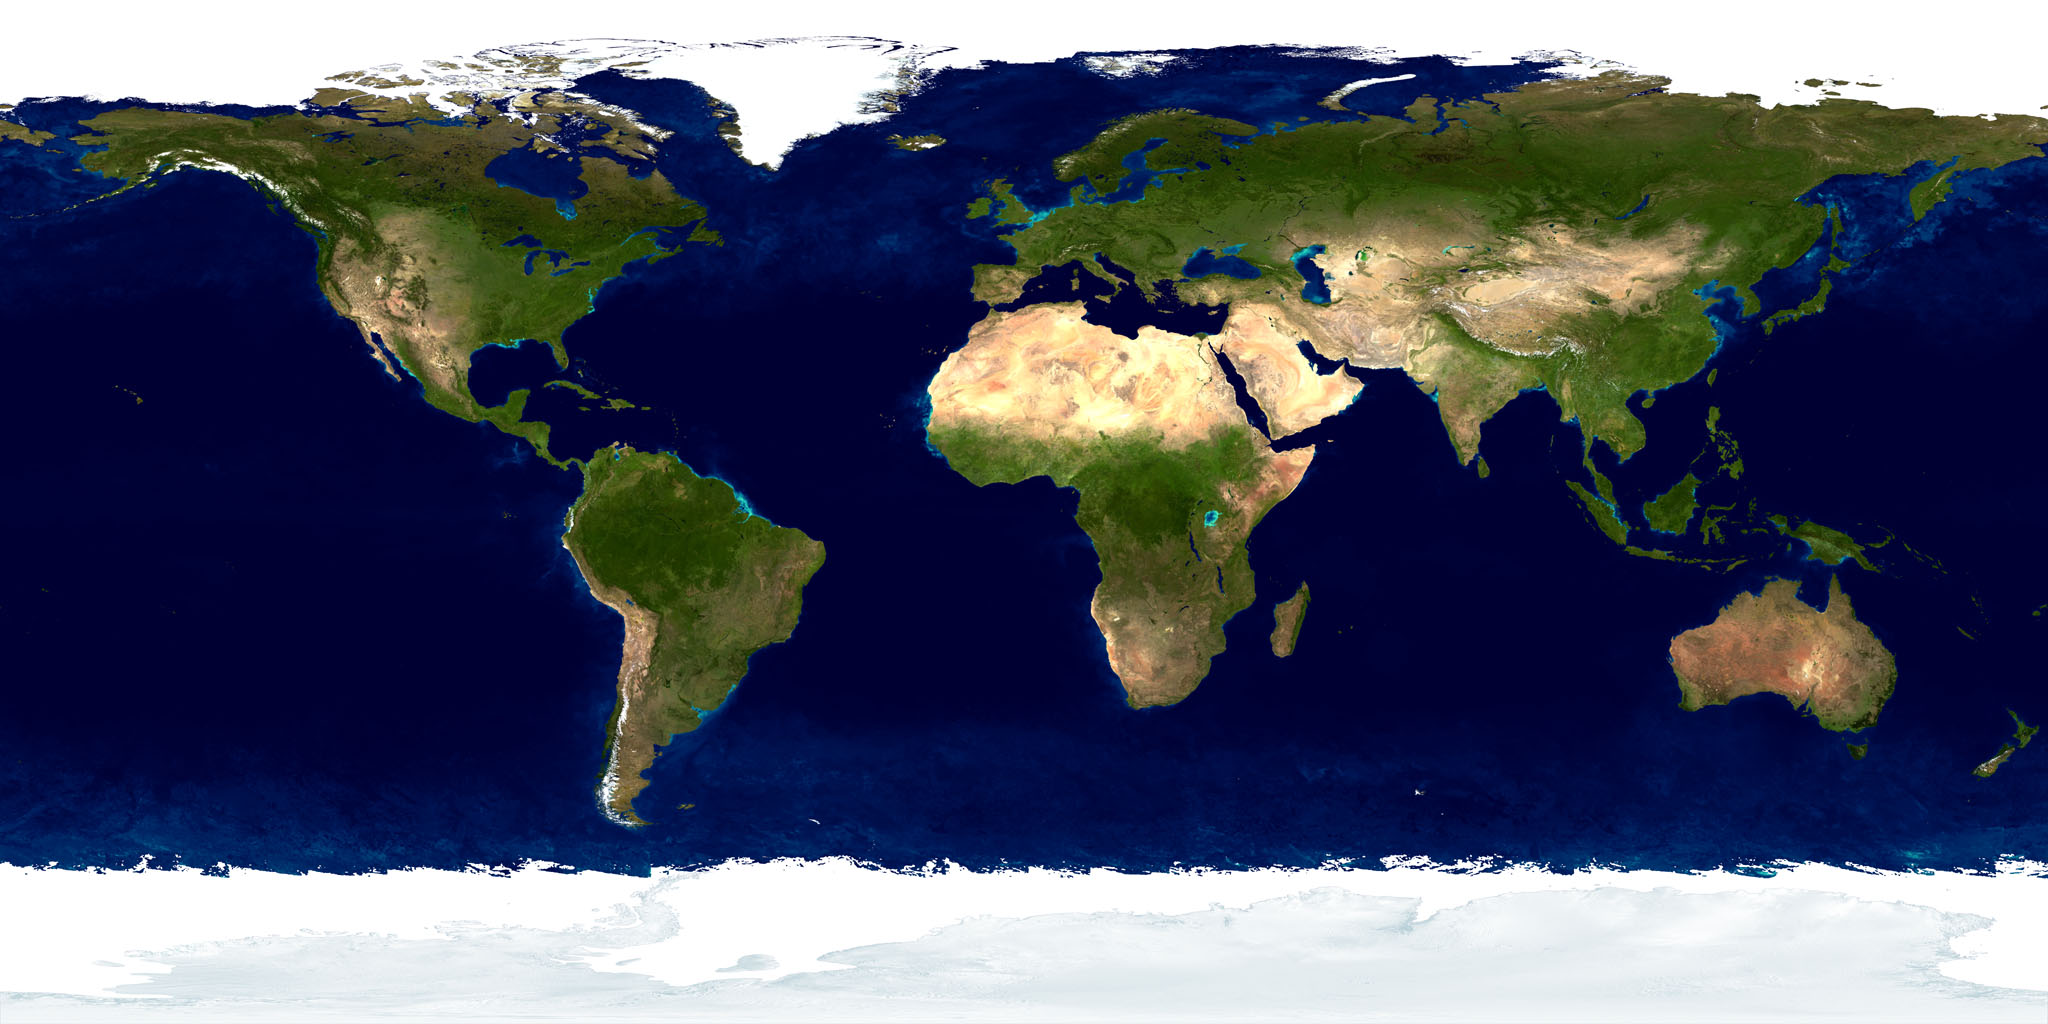 Nasa visible earth the blue marble land surface ocean color and file dimensions gumiabroncs Image collections